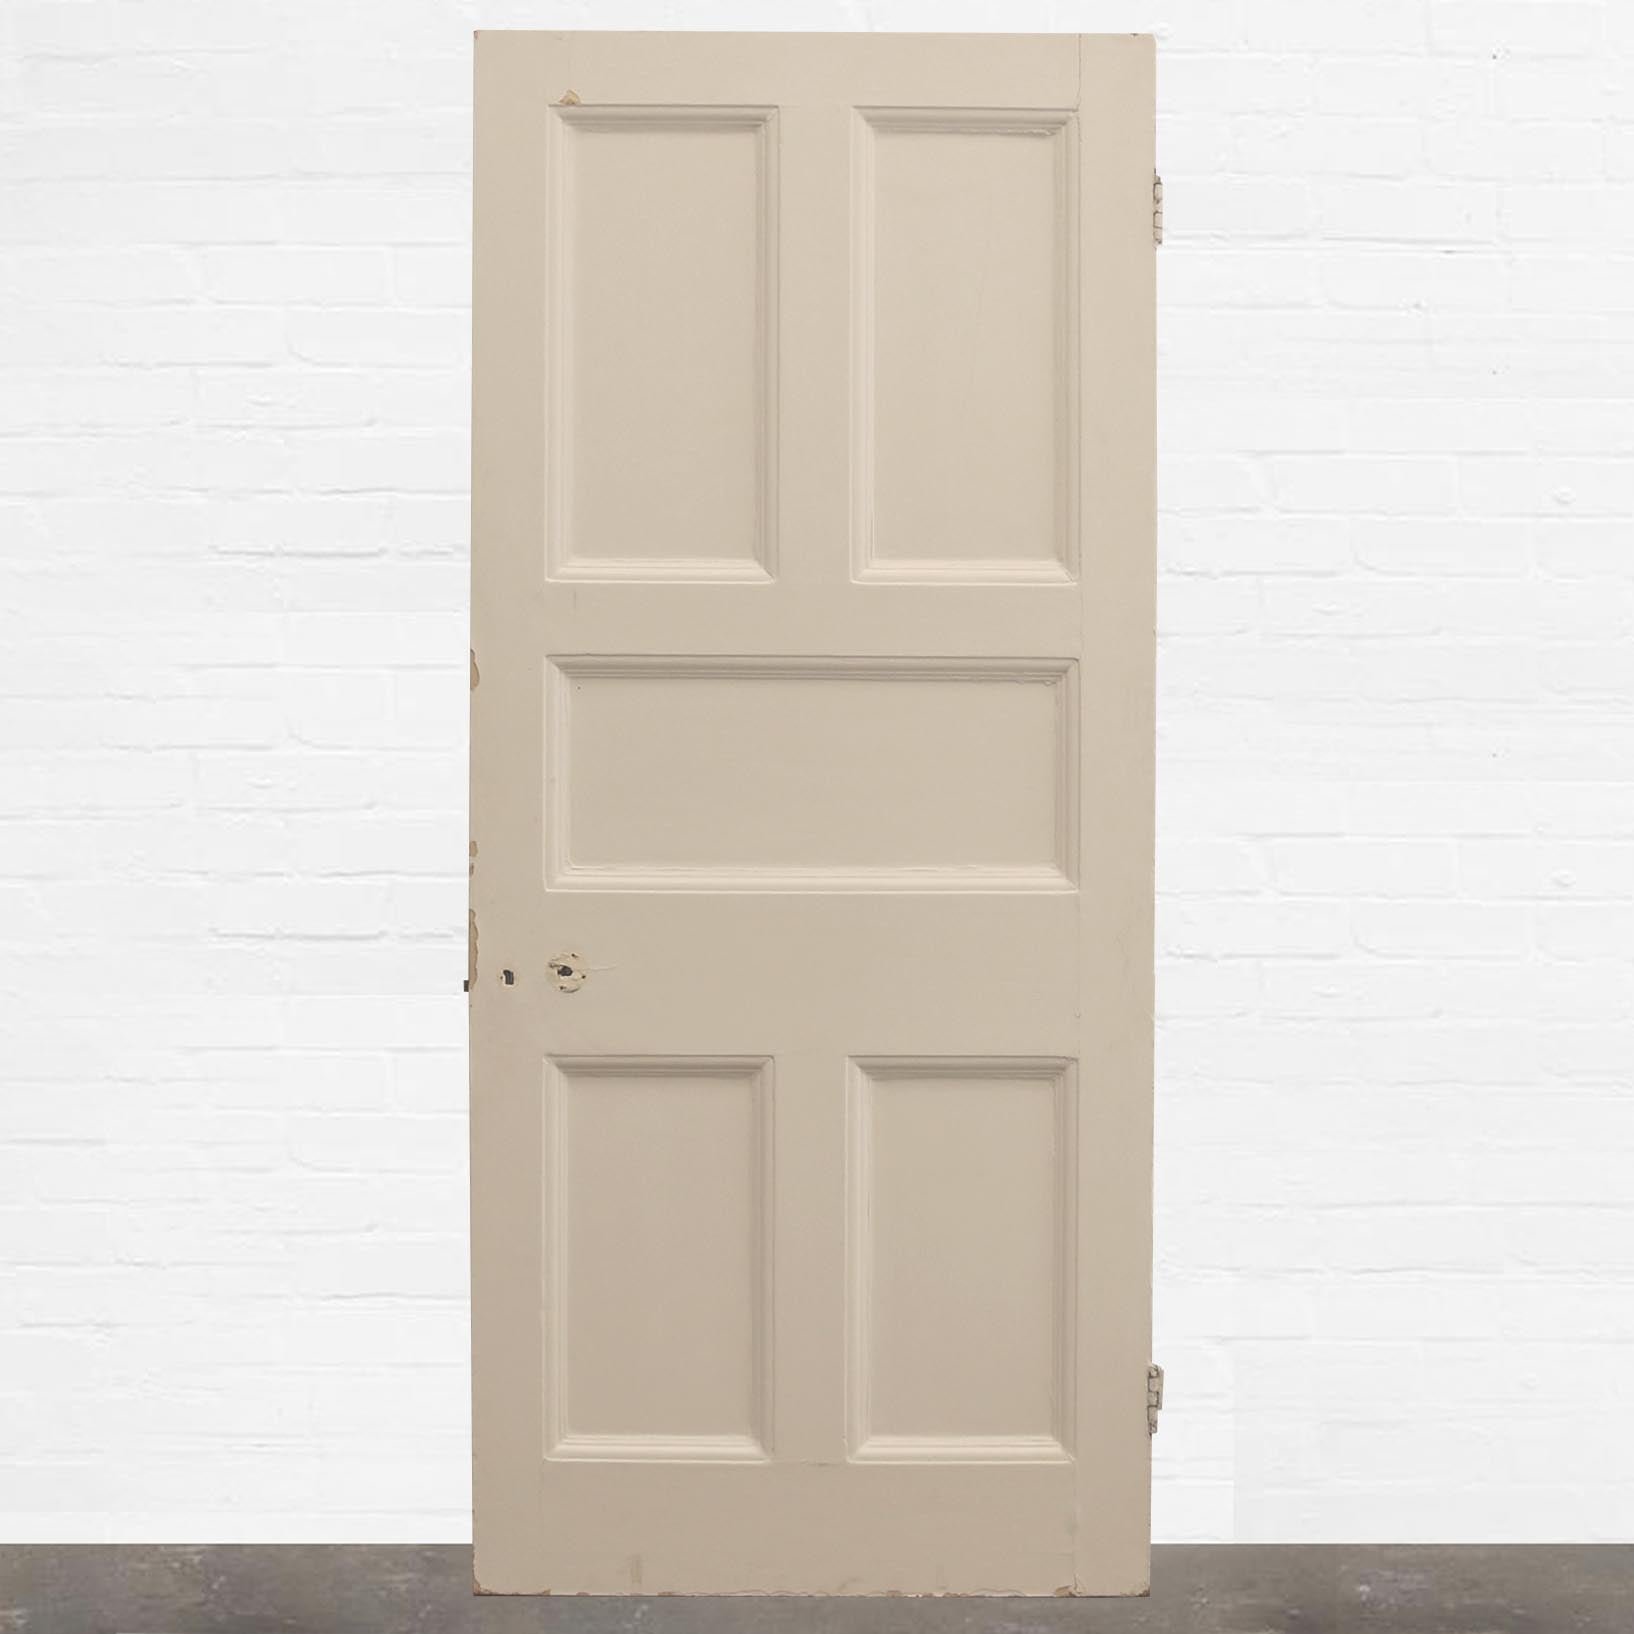 Antique Victorian Five Panel Door - 209.5cm x 90cm - The Architectural Forum